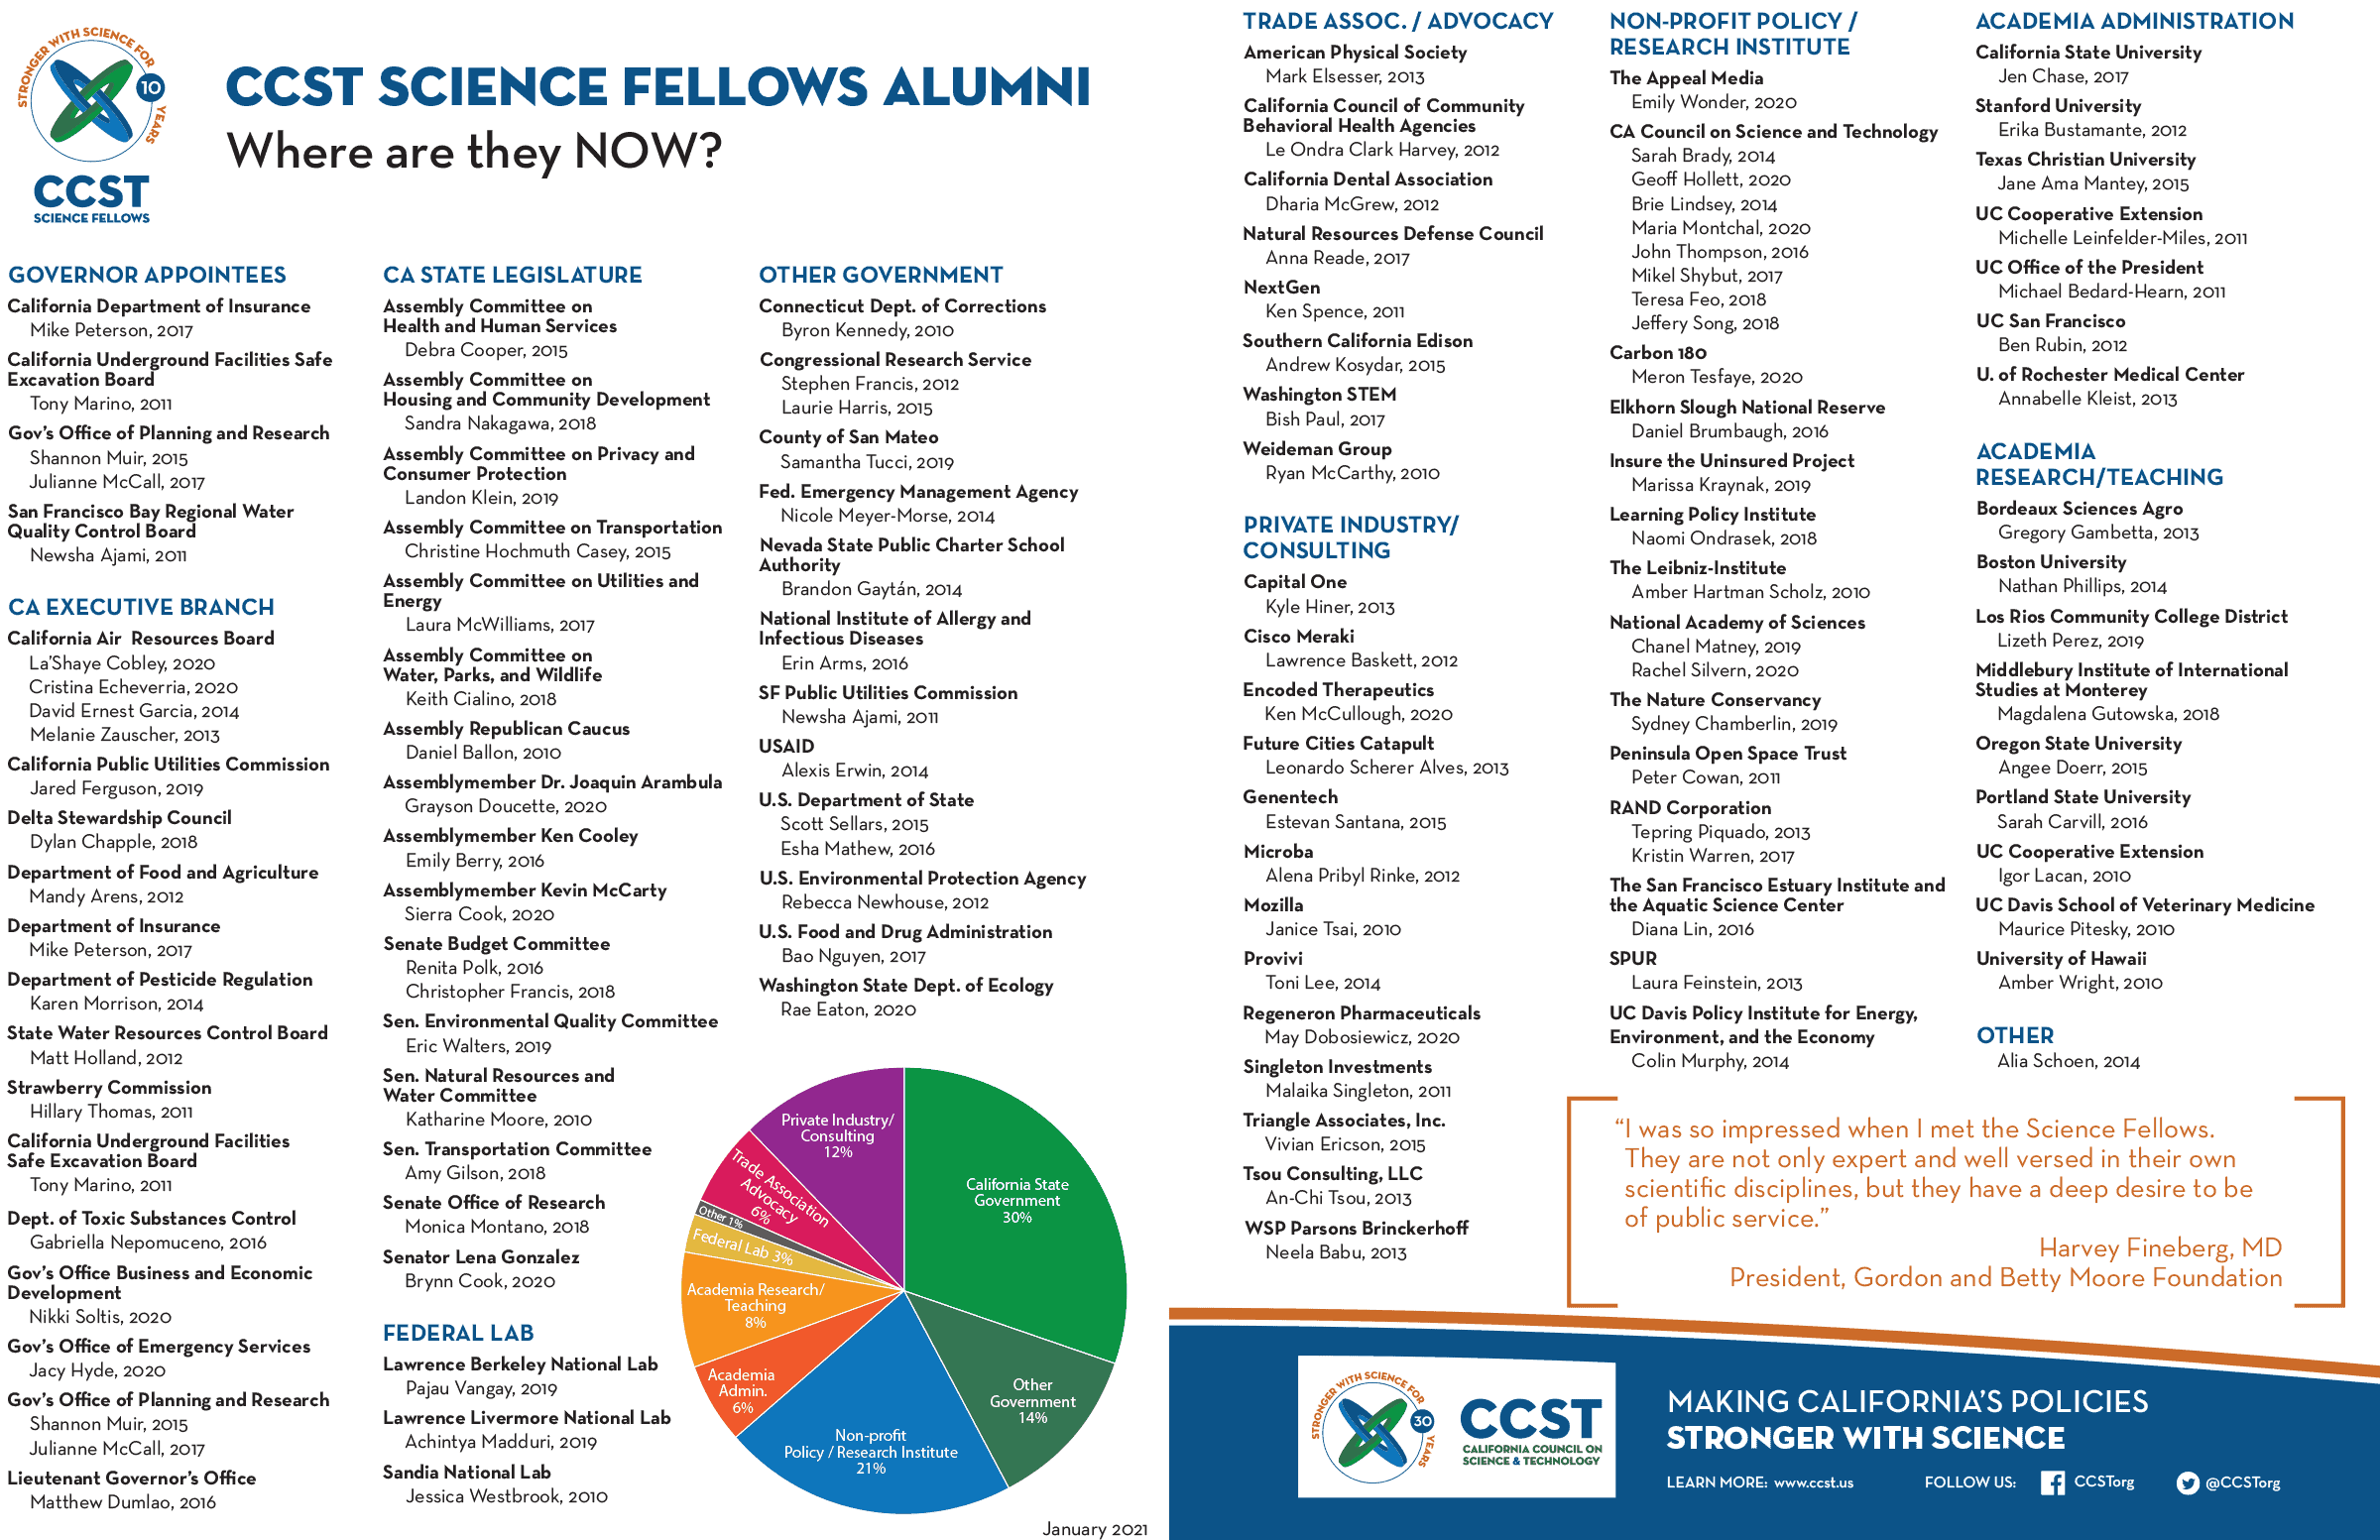 List of Fellows alumni careers